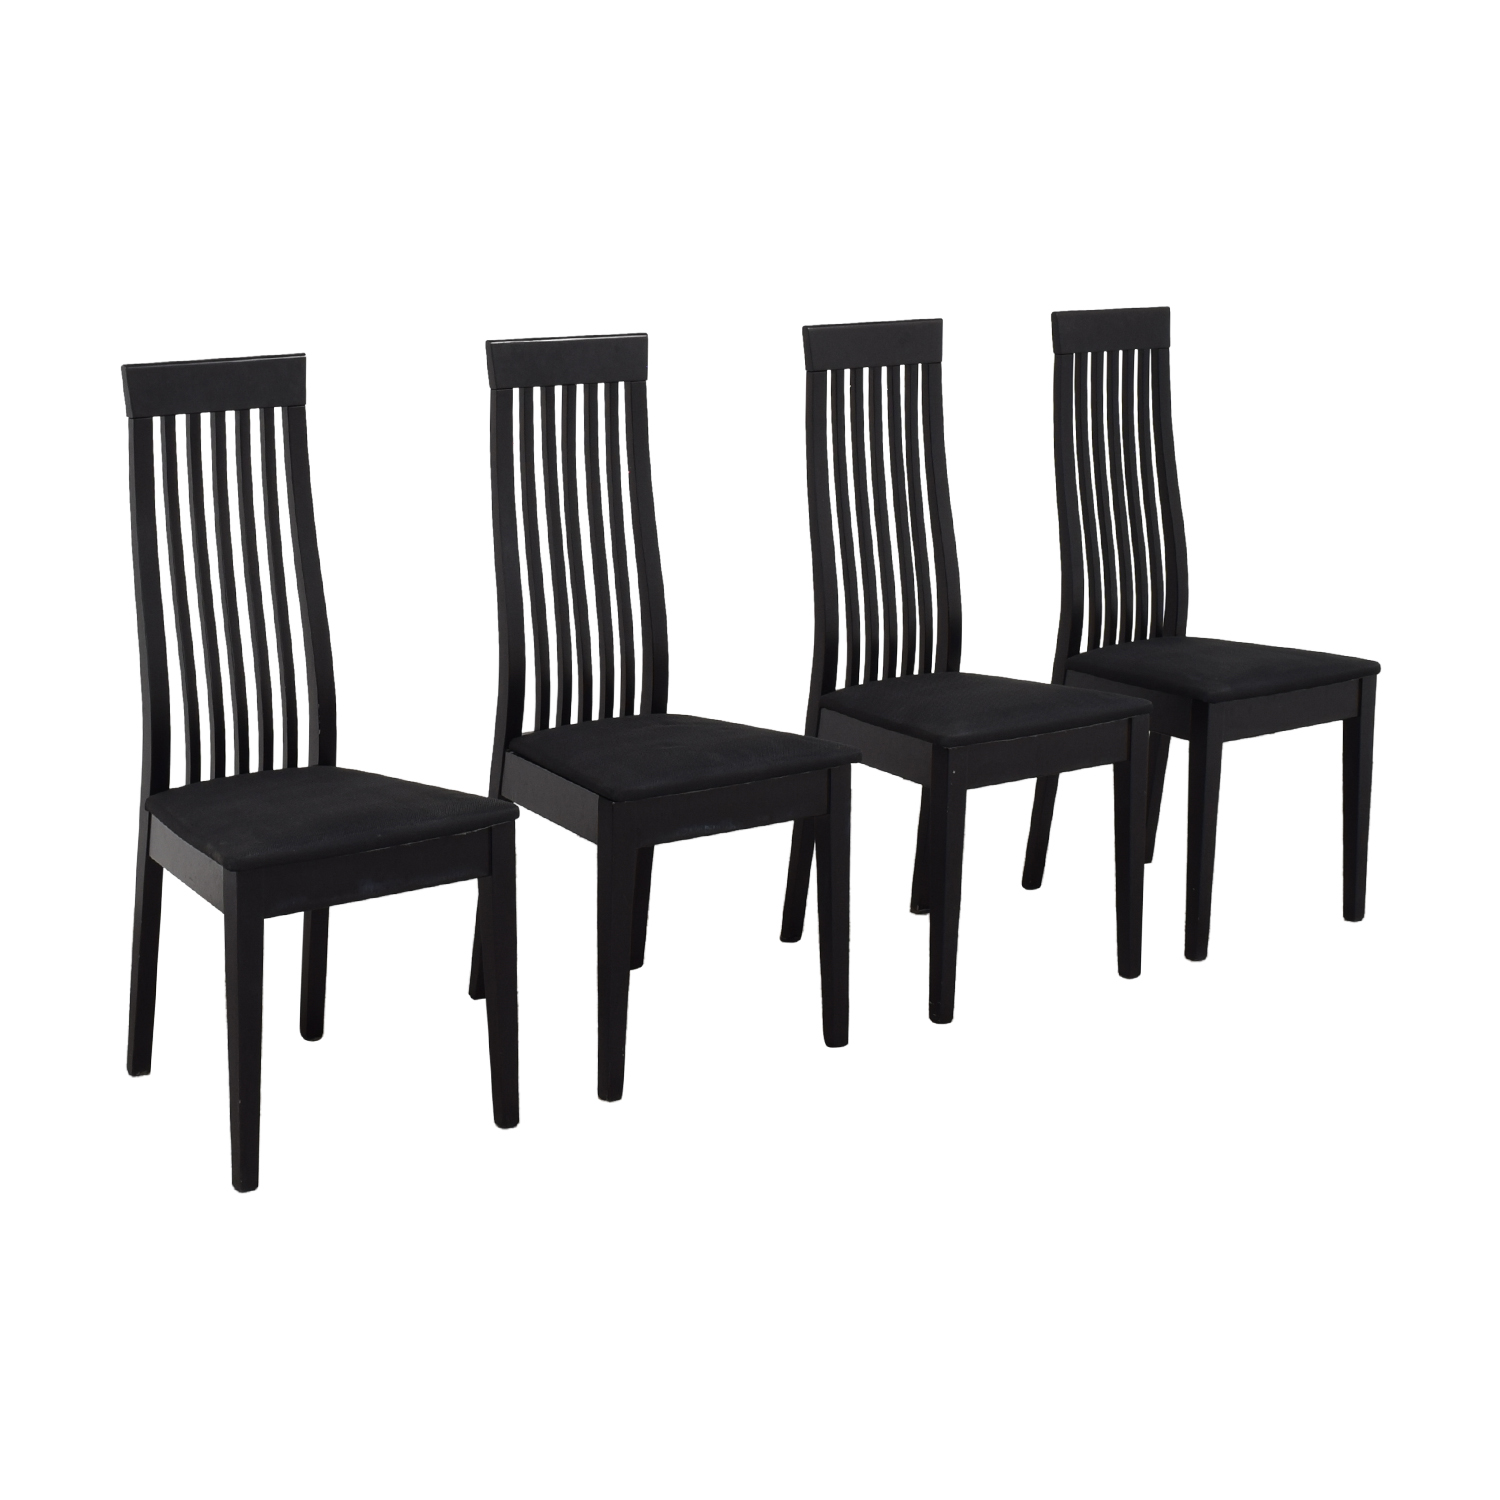 Calligaris Calligaris Upholstered Dining Chairs pa